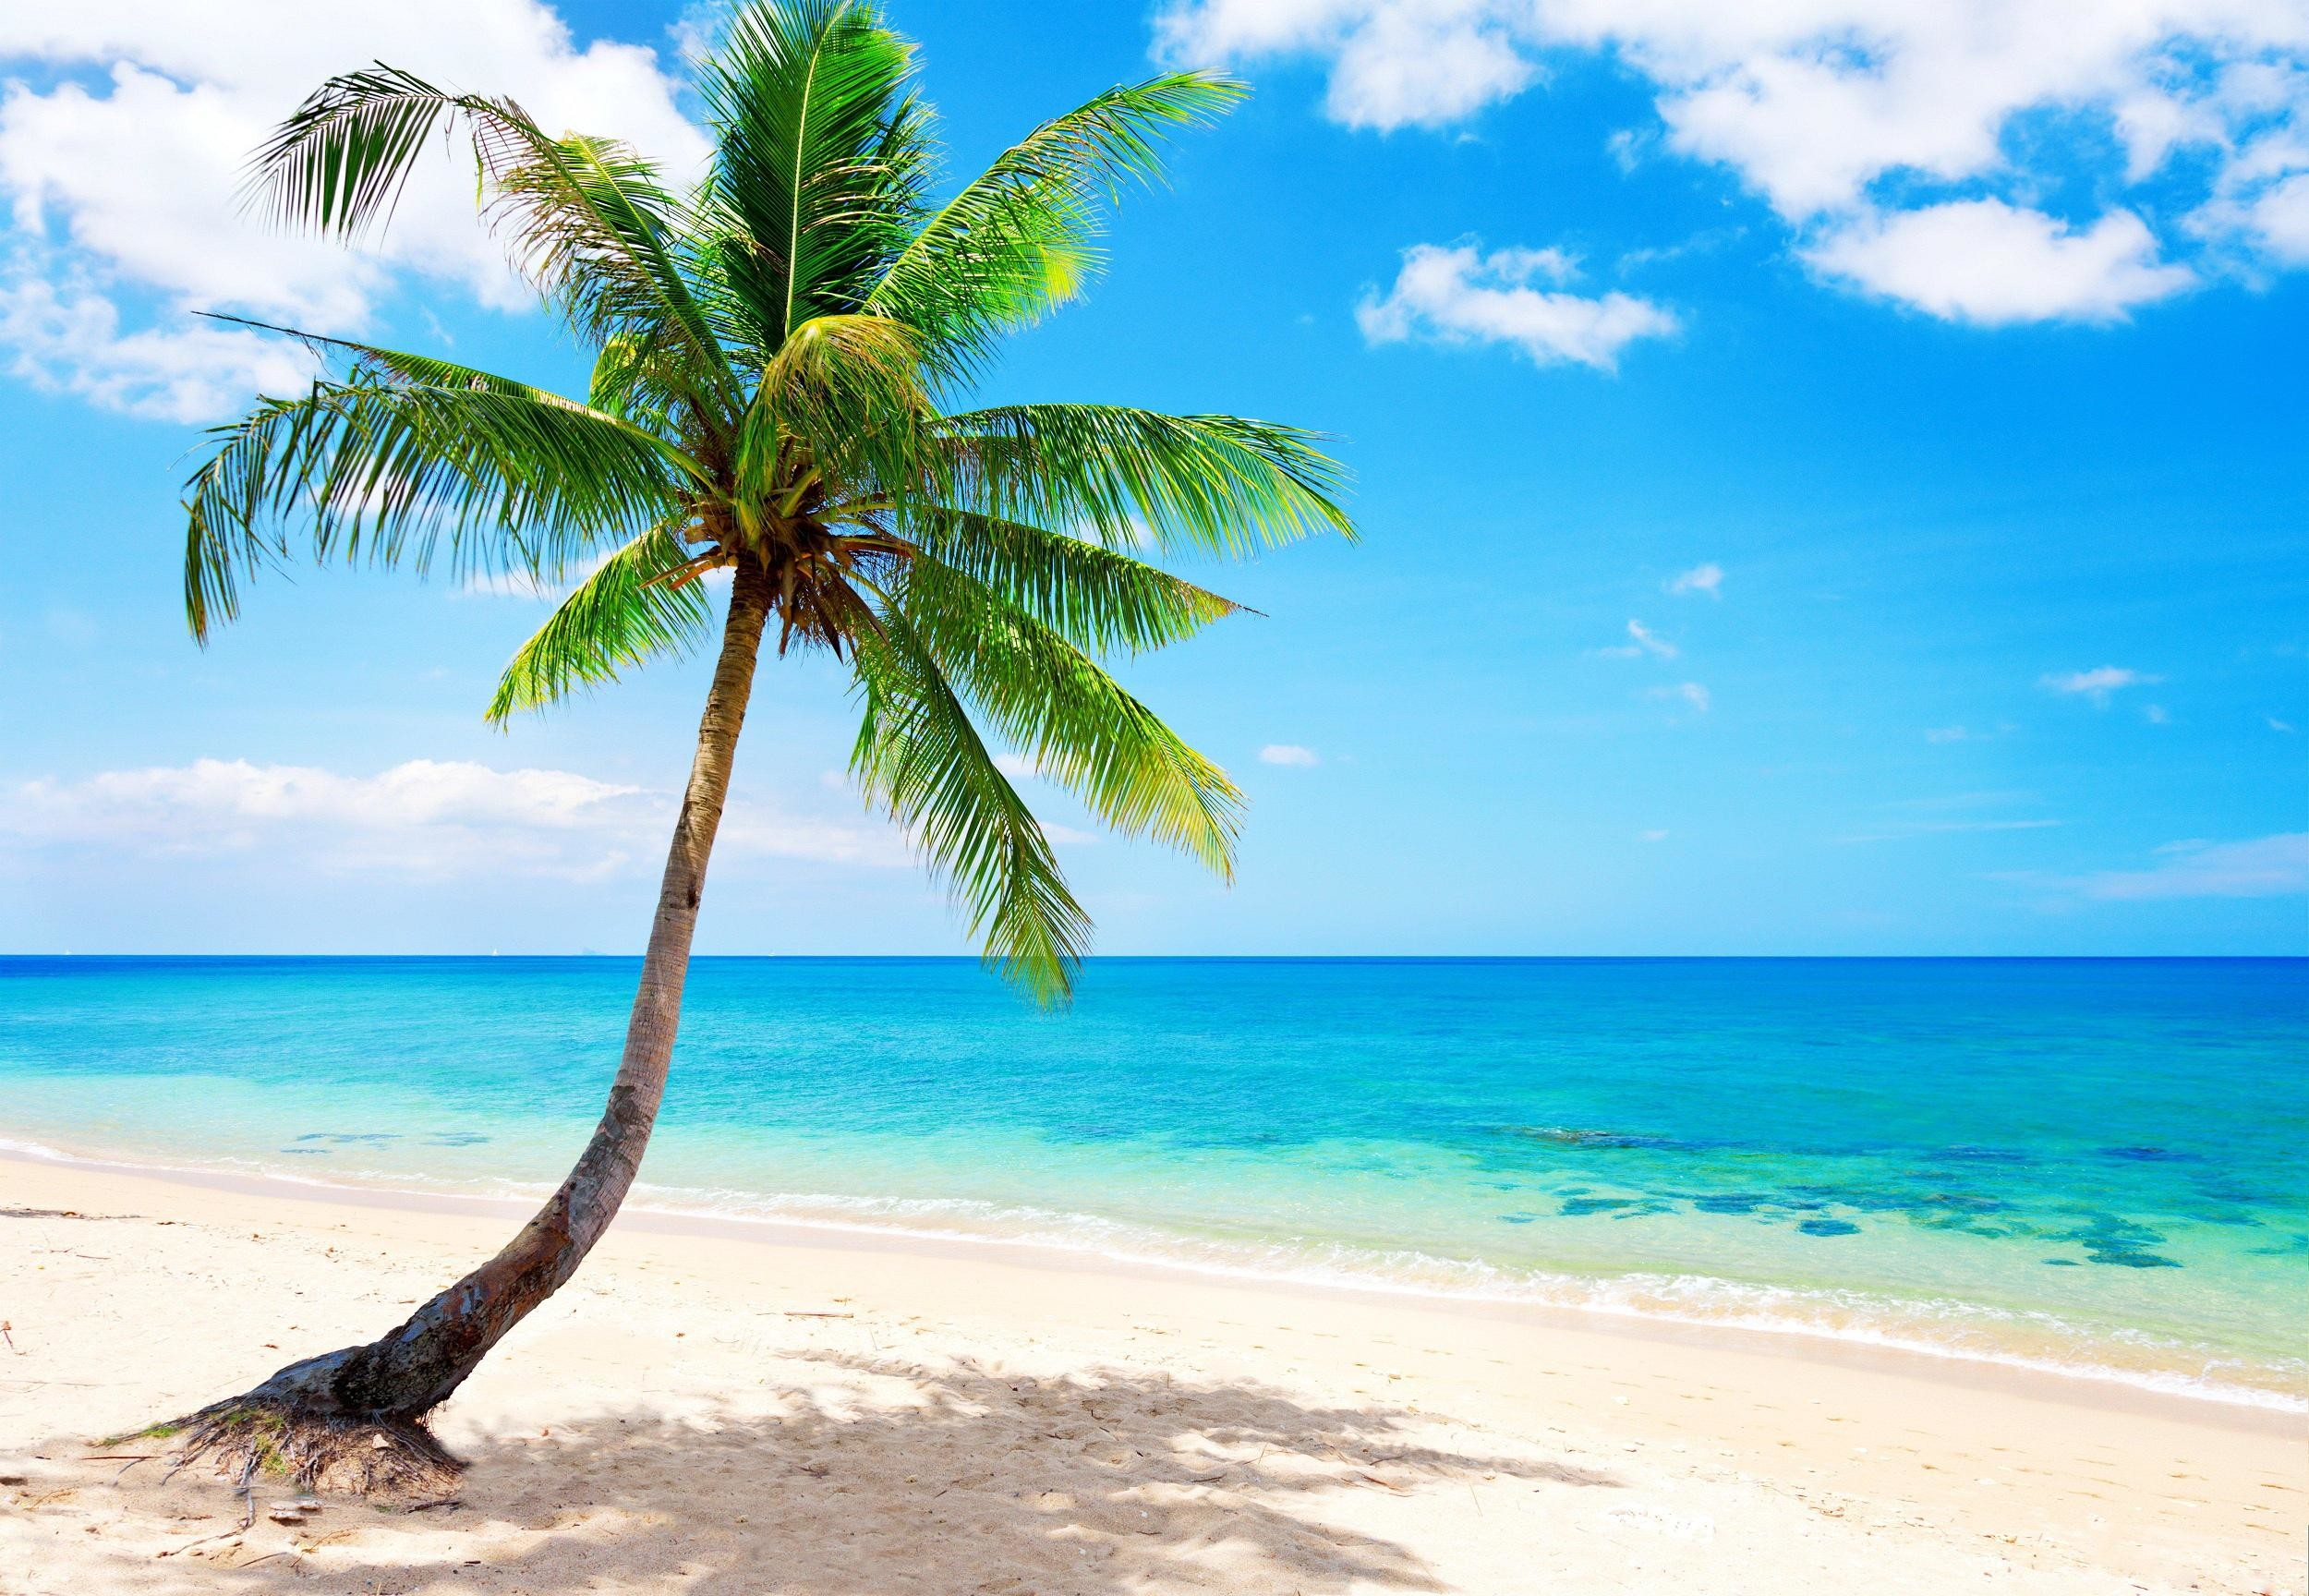 Palm Tree Beach Wallpaper (53+ images)